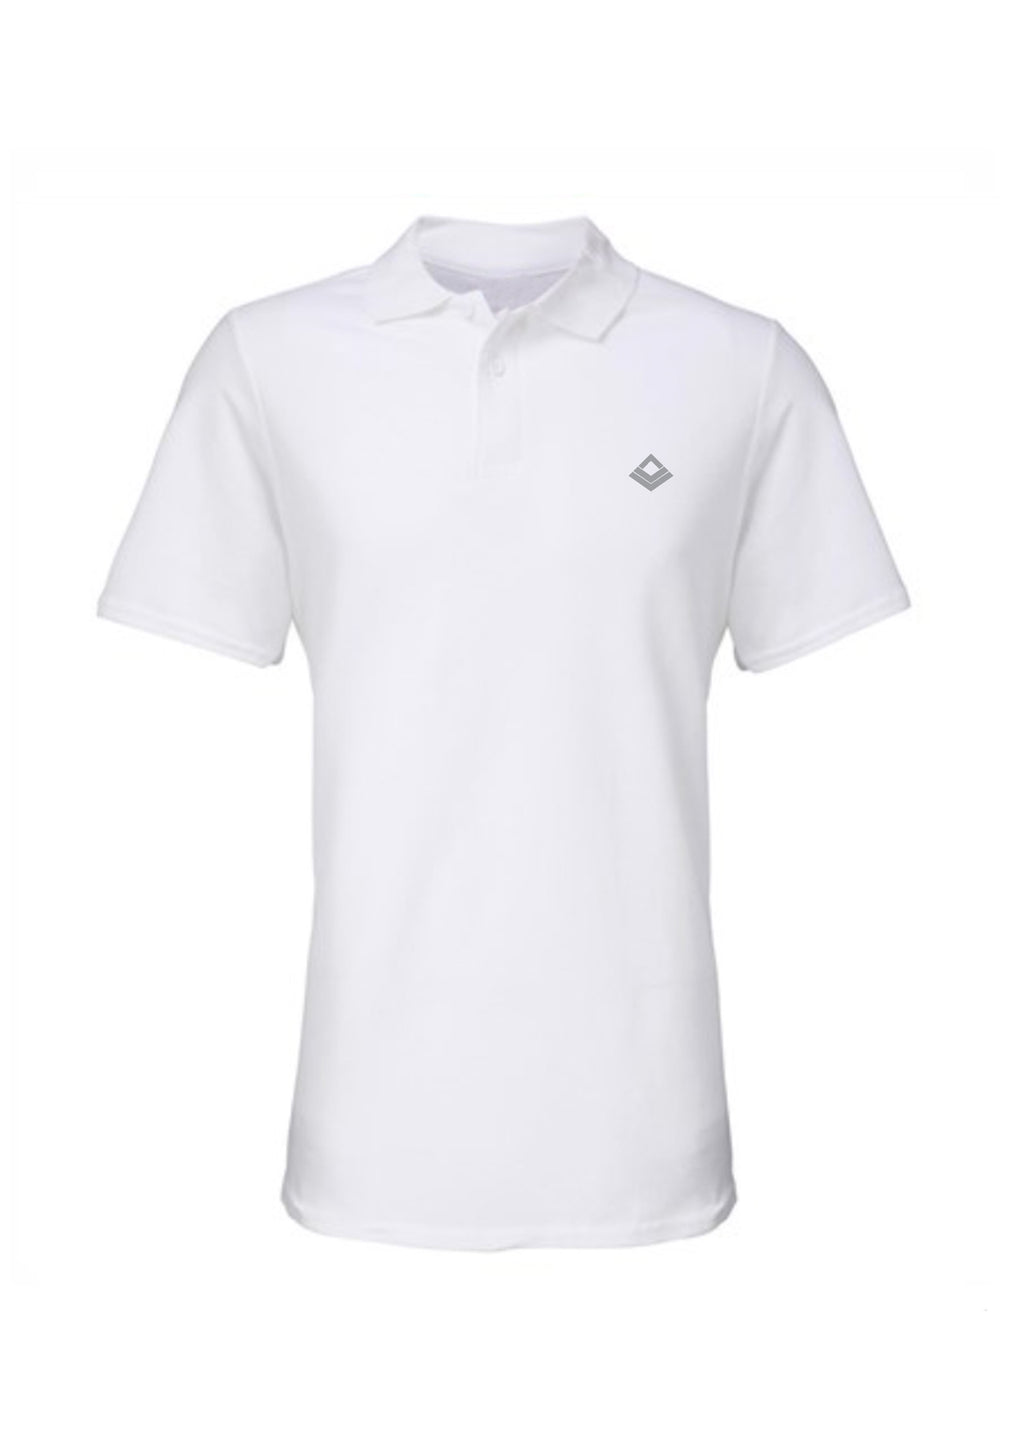 Swaggerlicious White Simple Polo Shirt with Silver Logo